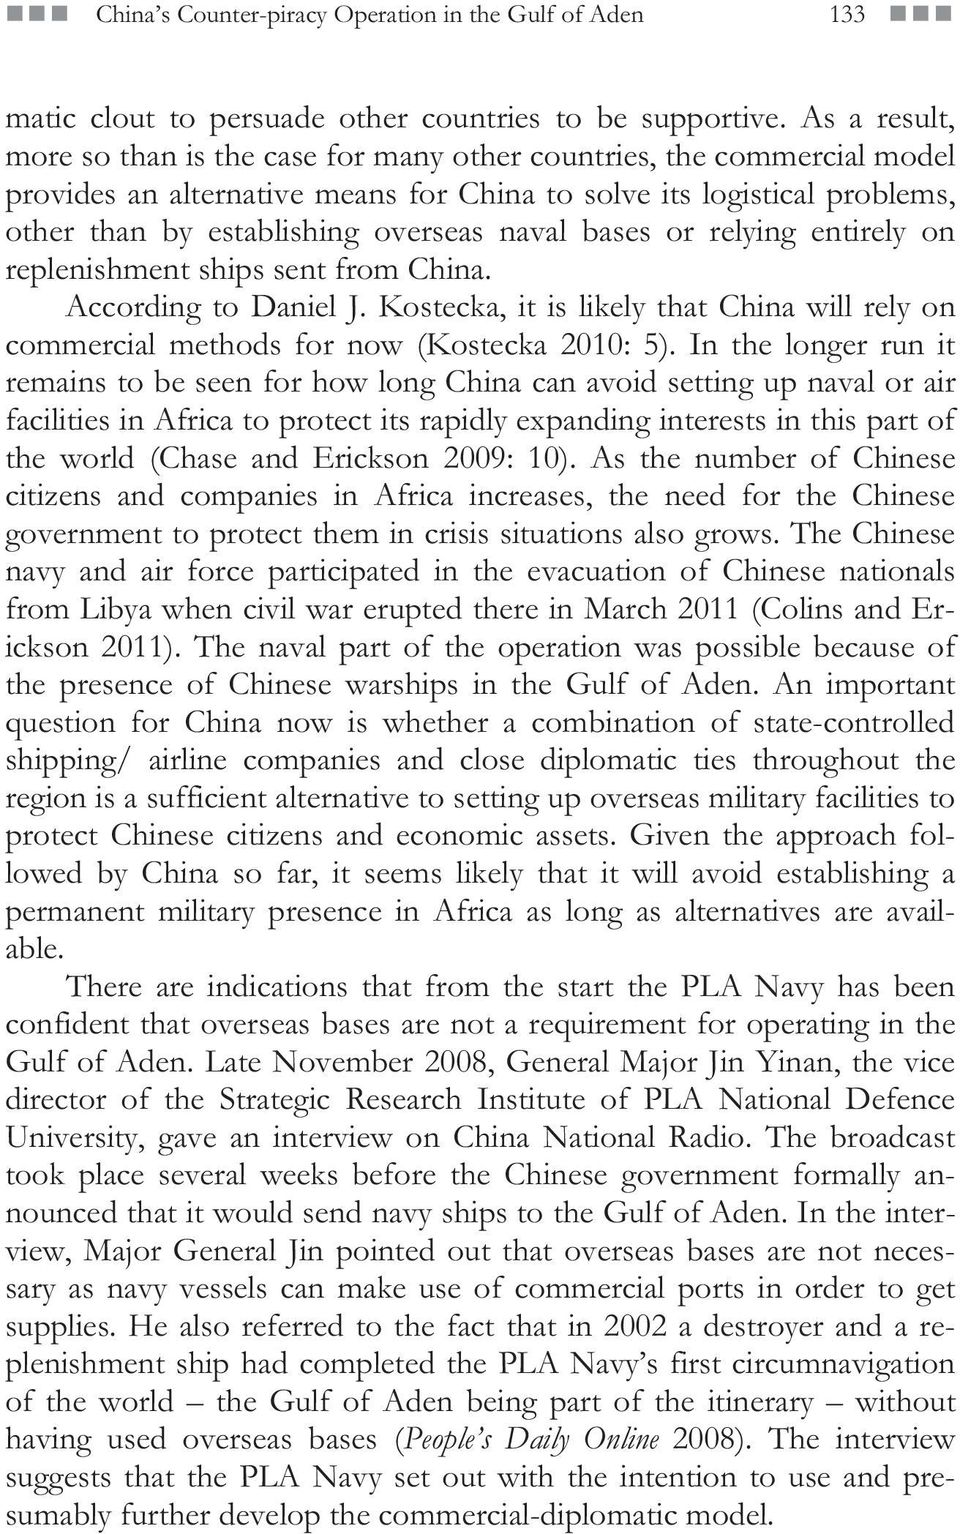 naval bases or relying entirely on replenishment ships sent from China. According to Daniel J. Kostecka, it is likely that China will rely on commercial methods for now (Kostecka 2010: 5).